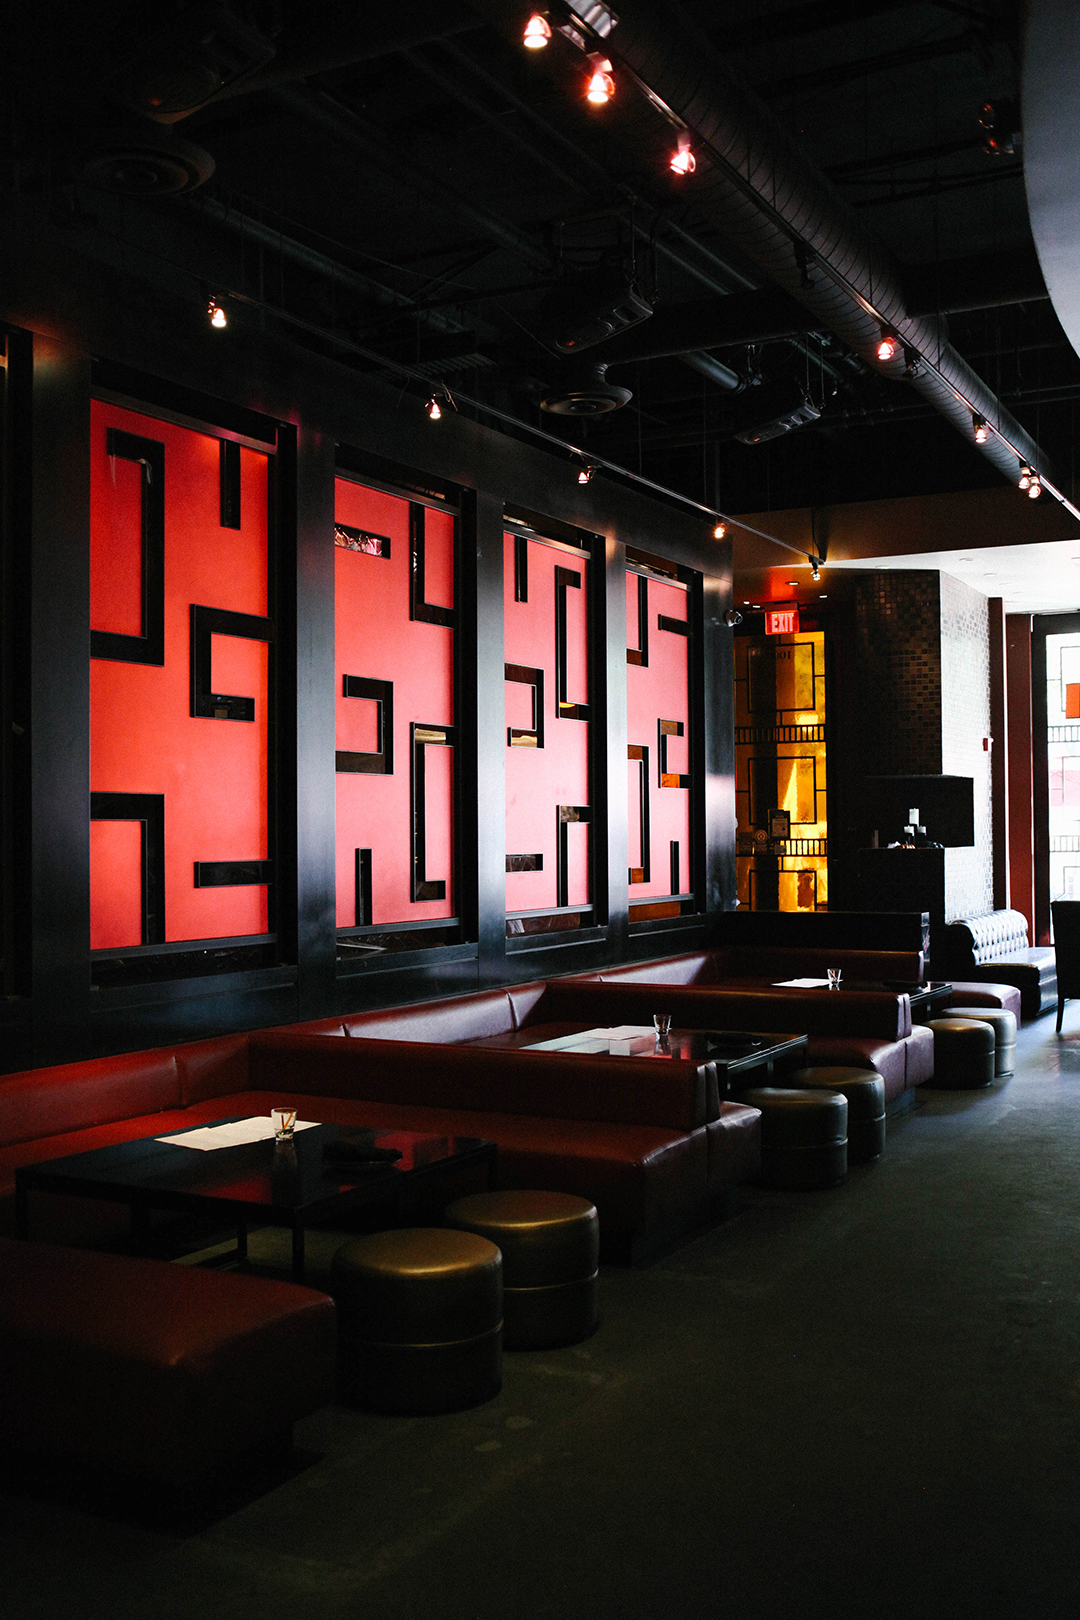 Sino_SantanaRow_interior_006.jpg